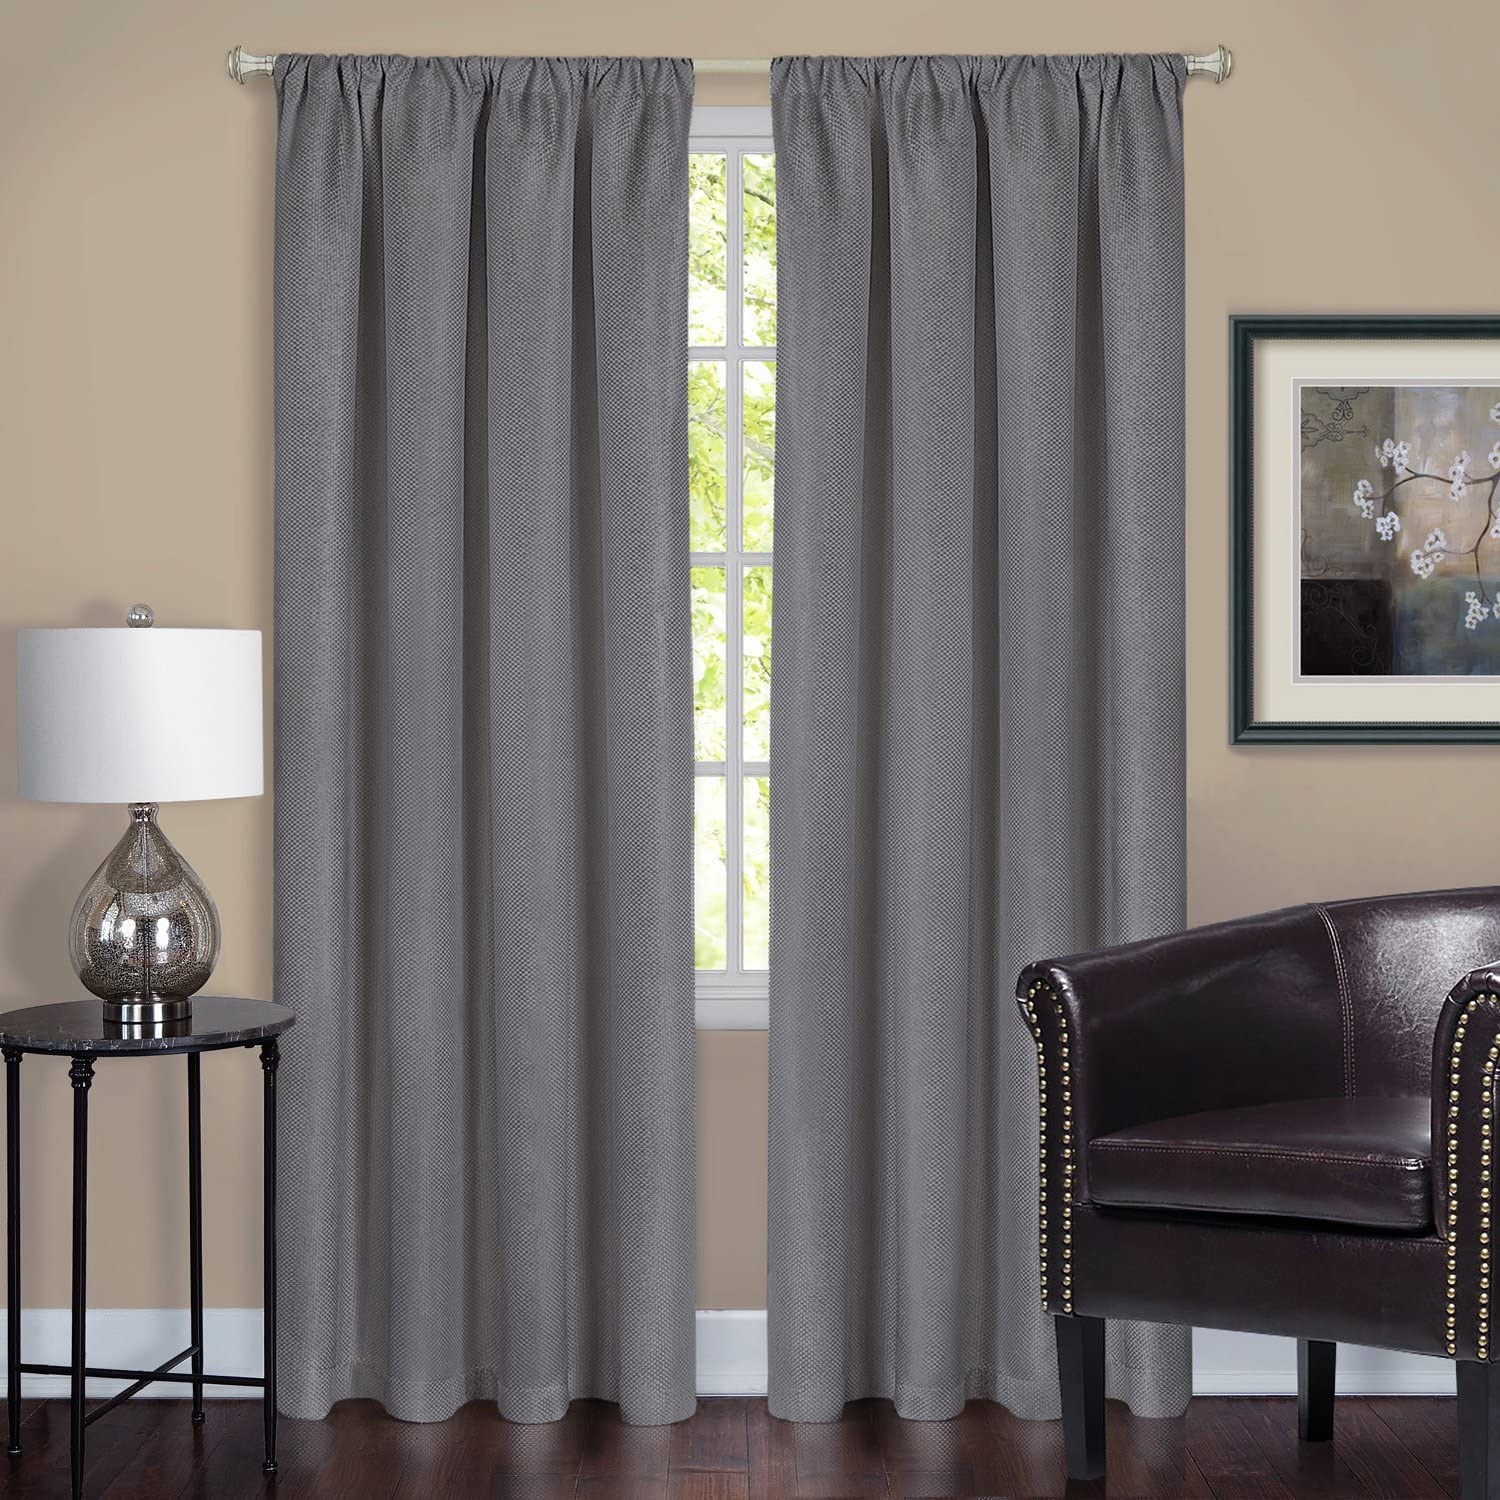 Achim Home Furnishings Ombre Window Curtain Panel, 50 by 63